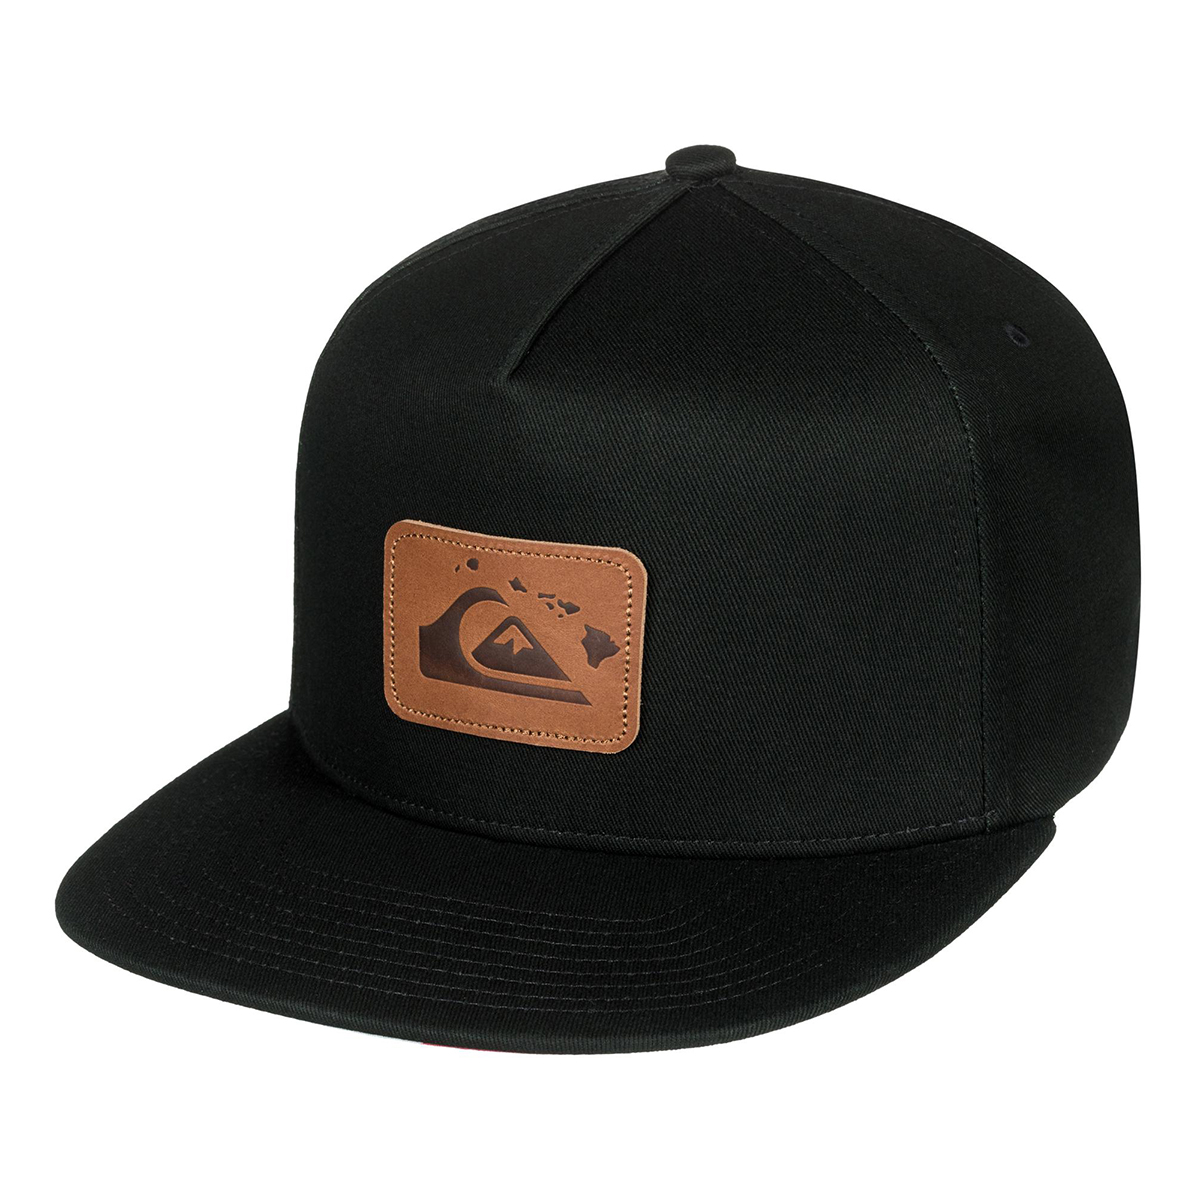 cheap for discount 9e900 ae351 ... inexpensive quiksilver quiksilver mens outriggin snapback hat walmart  cba2a 3781f